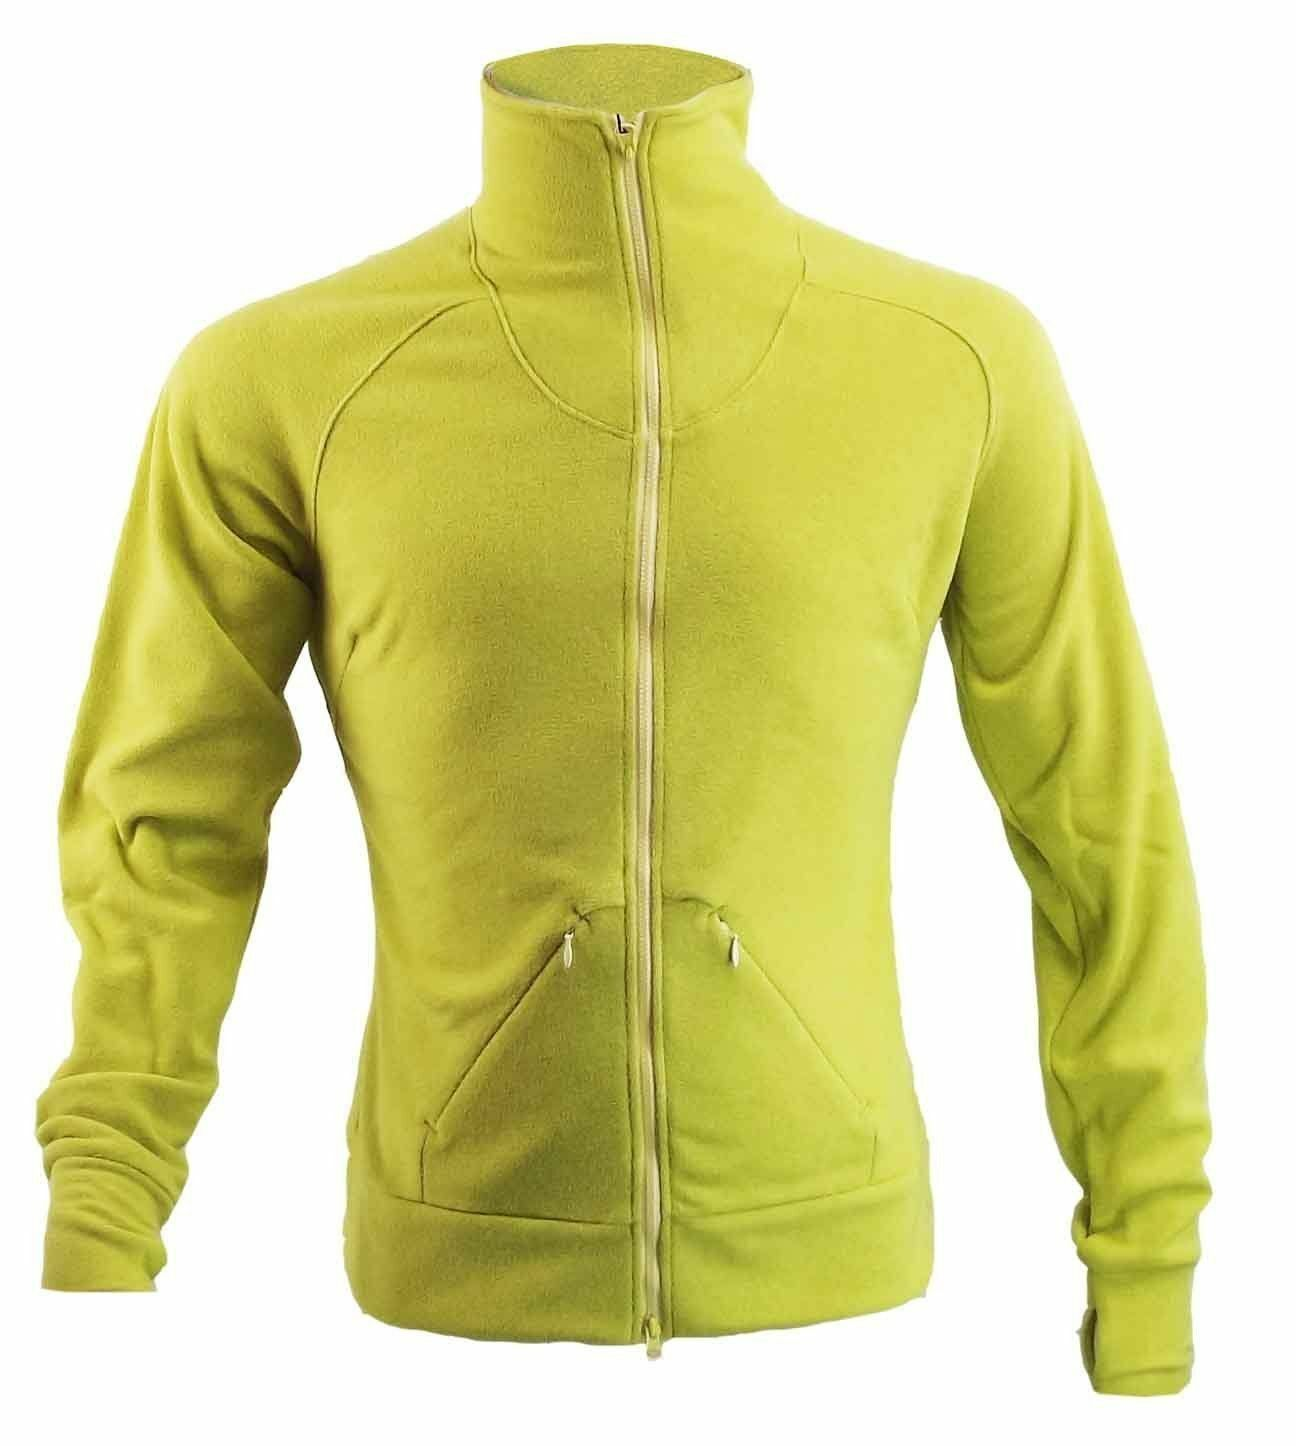 Westcomb Women's Salish Sweater (M) Chamomile -  New with Tags Attached W-40